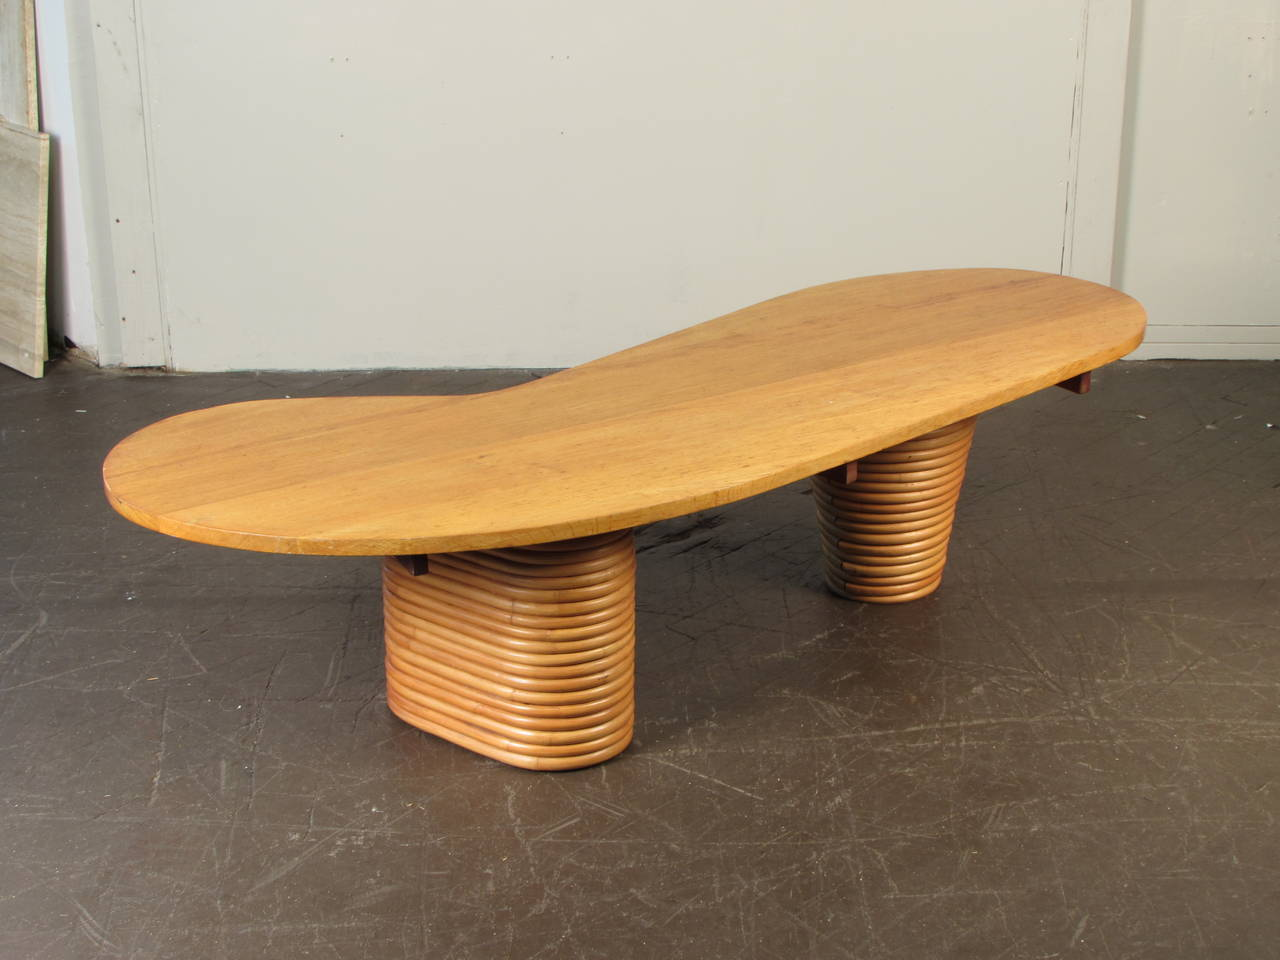 Biomorphic Coffee Table Rare Biomorphic Coffee Table With Rattan Base In The Style Of Paul